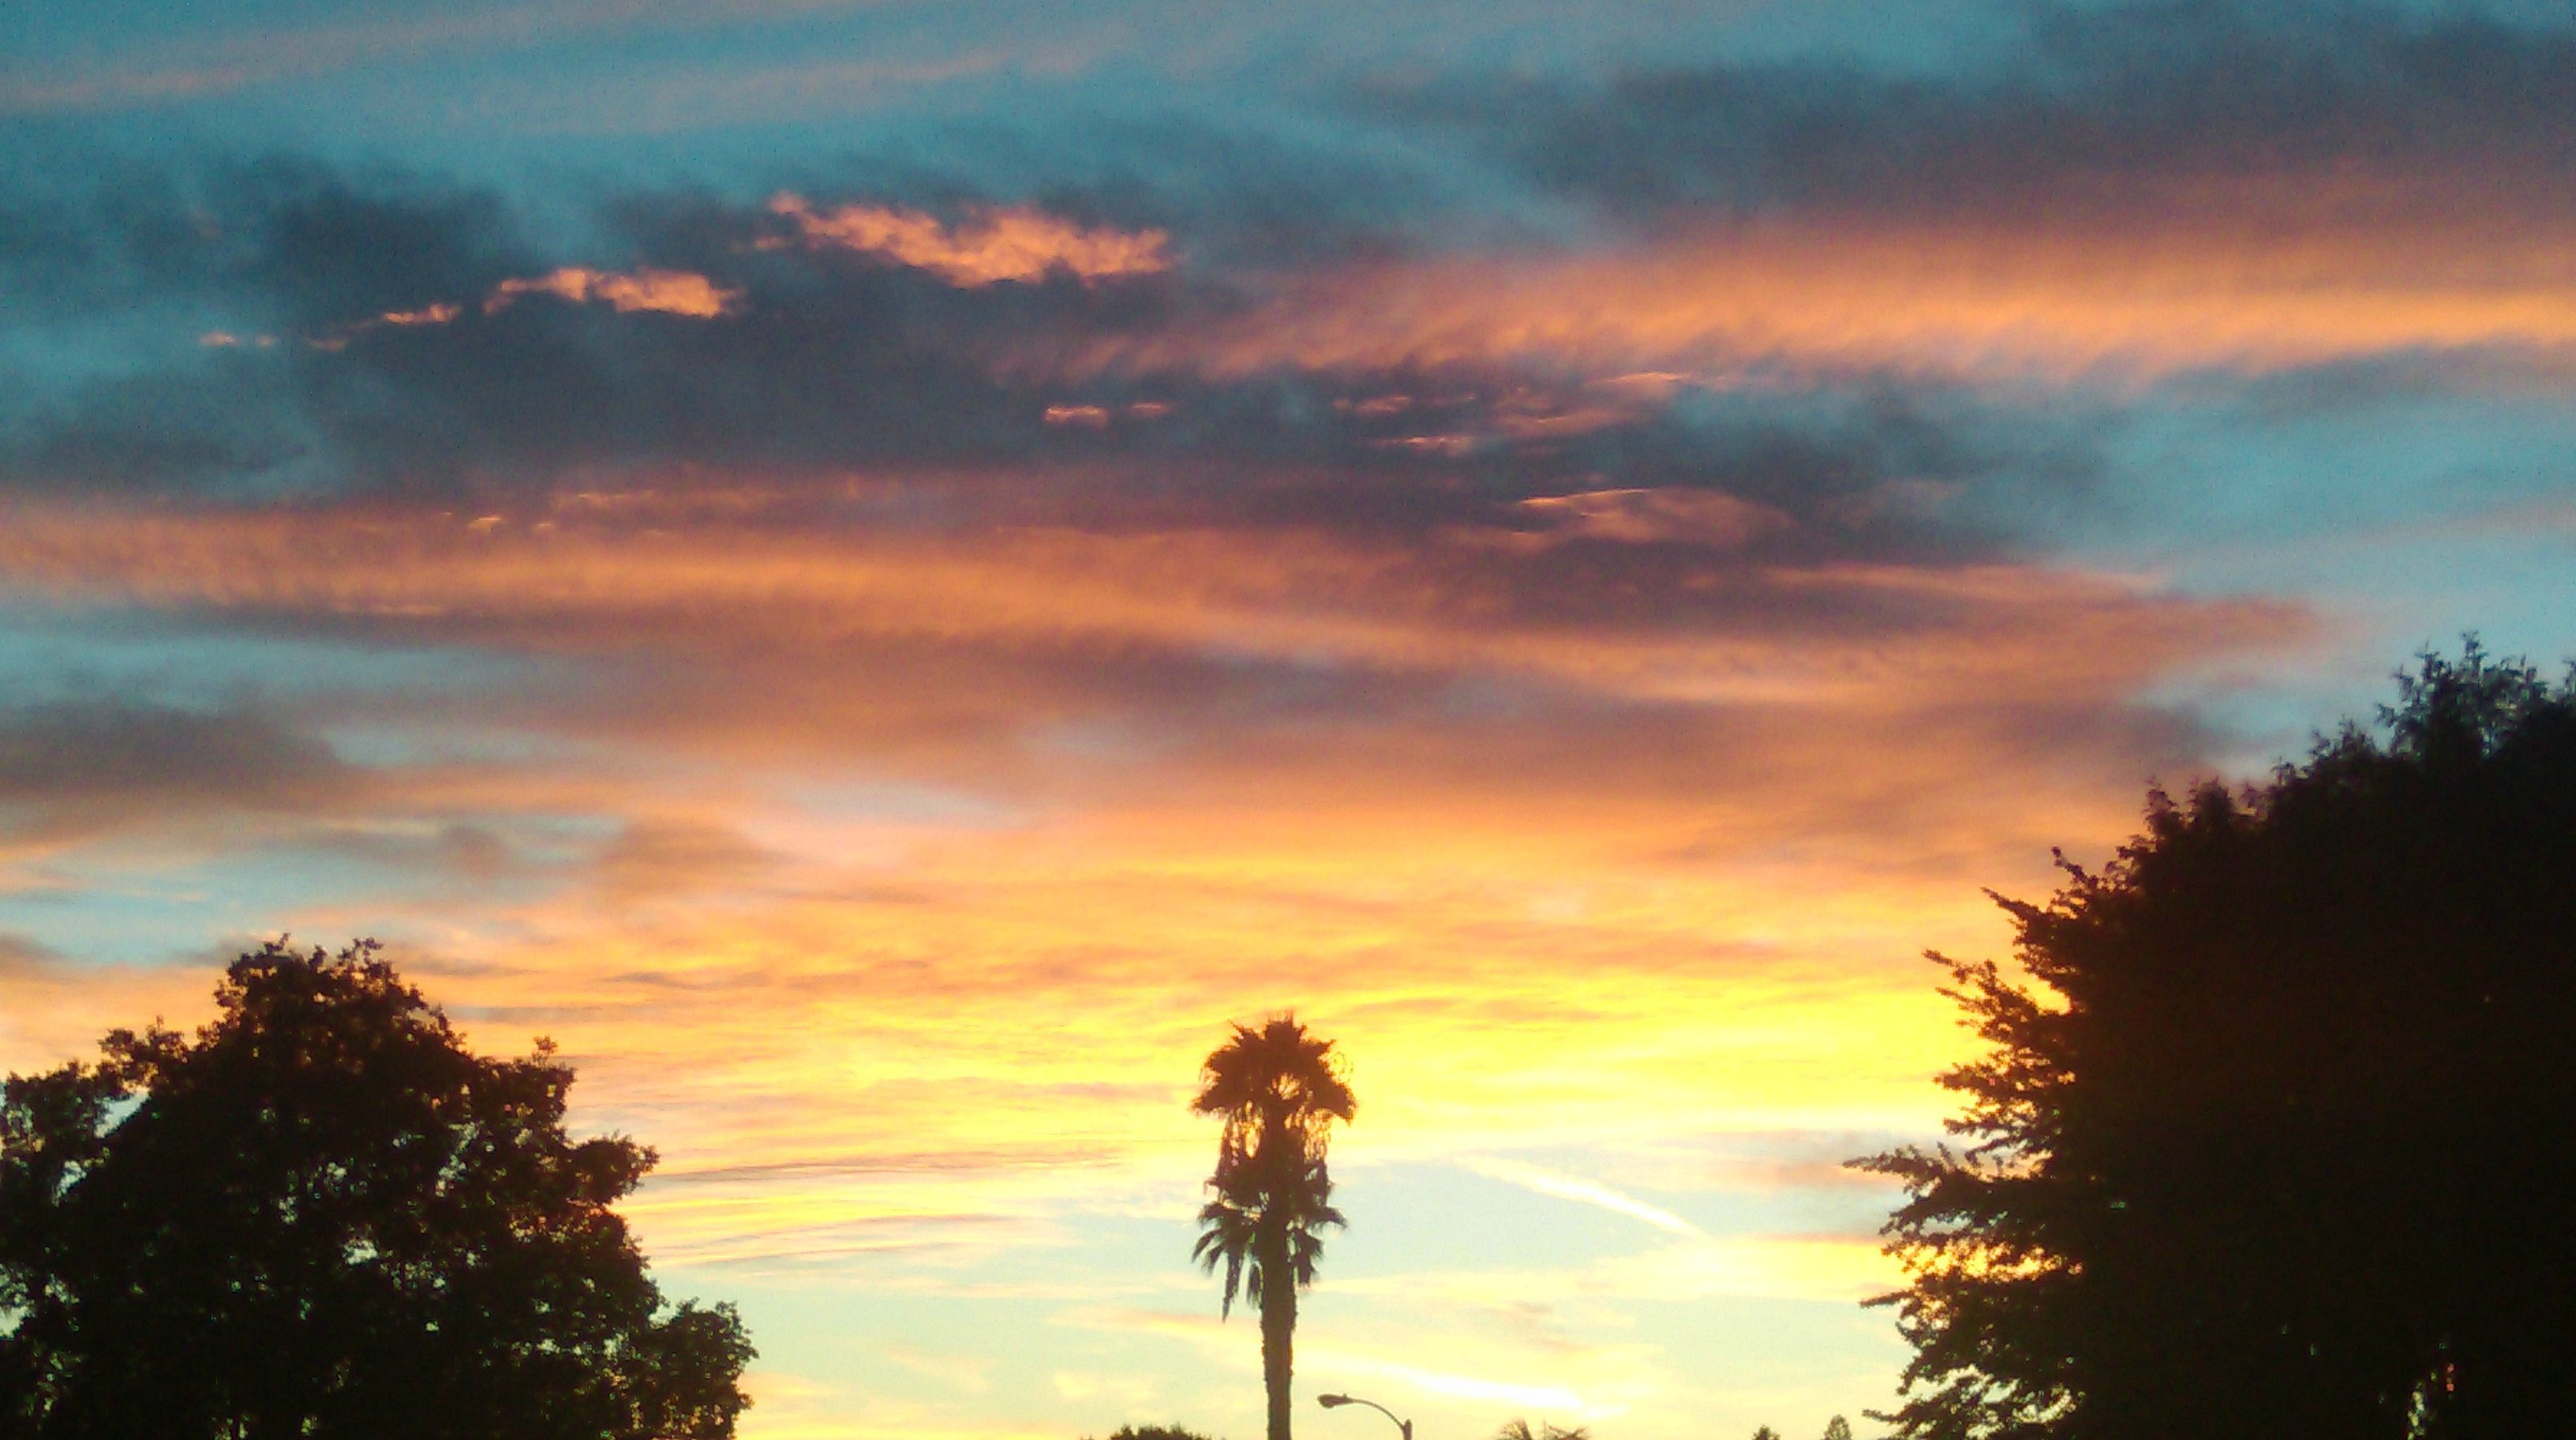 Sunset in the Central Valley of California [3264X1824]